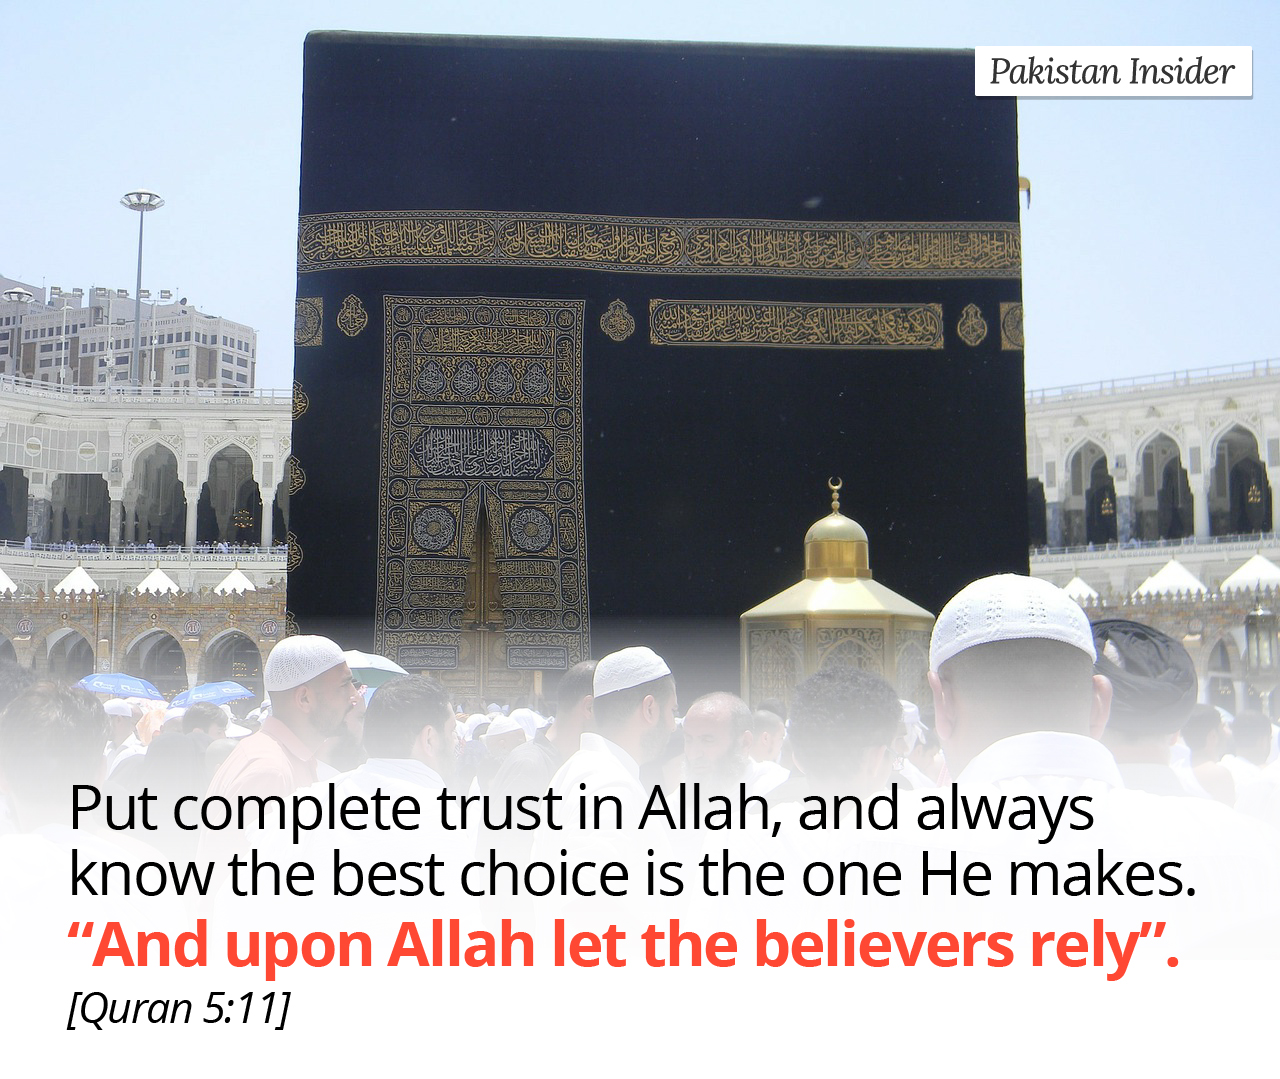 Put complete trust in Allah, and always know the best choice is the one He makes.